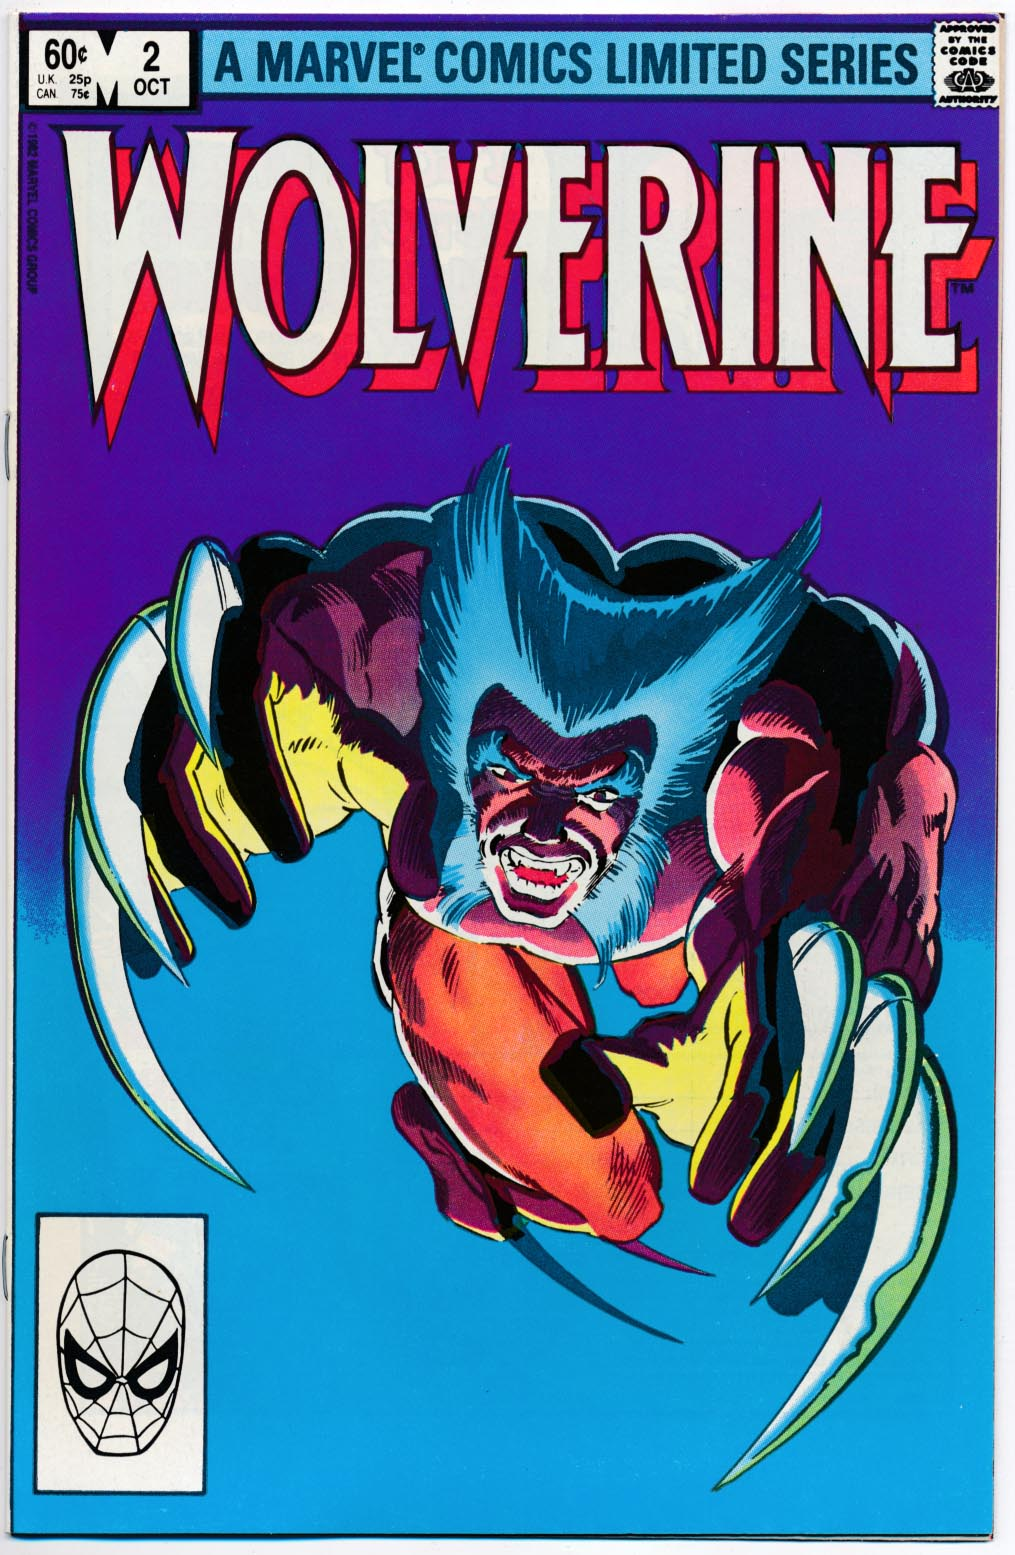 Wolverine vol 1 - 2 (of 4 )